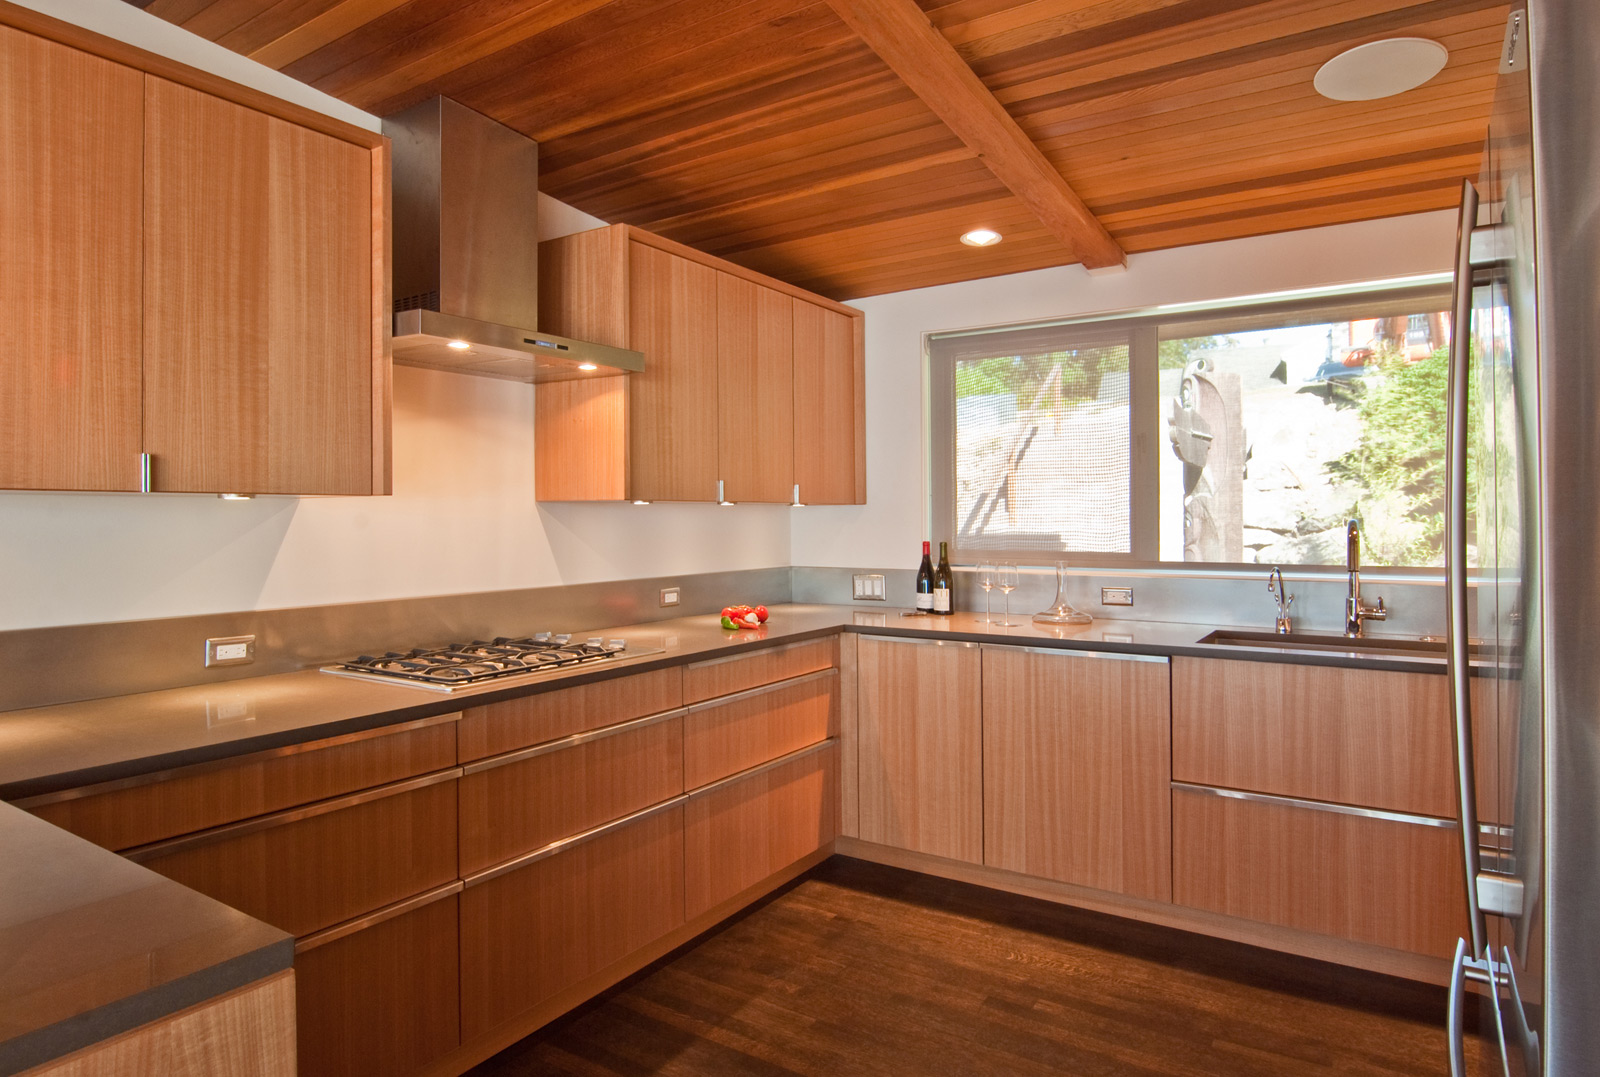 Kitchen Vent Design Strategies For Kitchen Hood Venting Build Blog